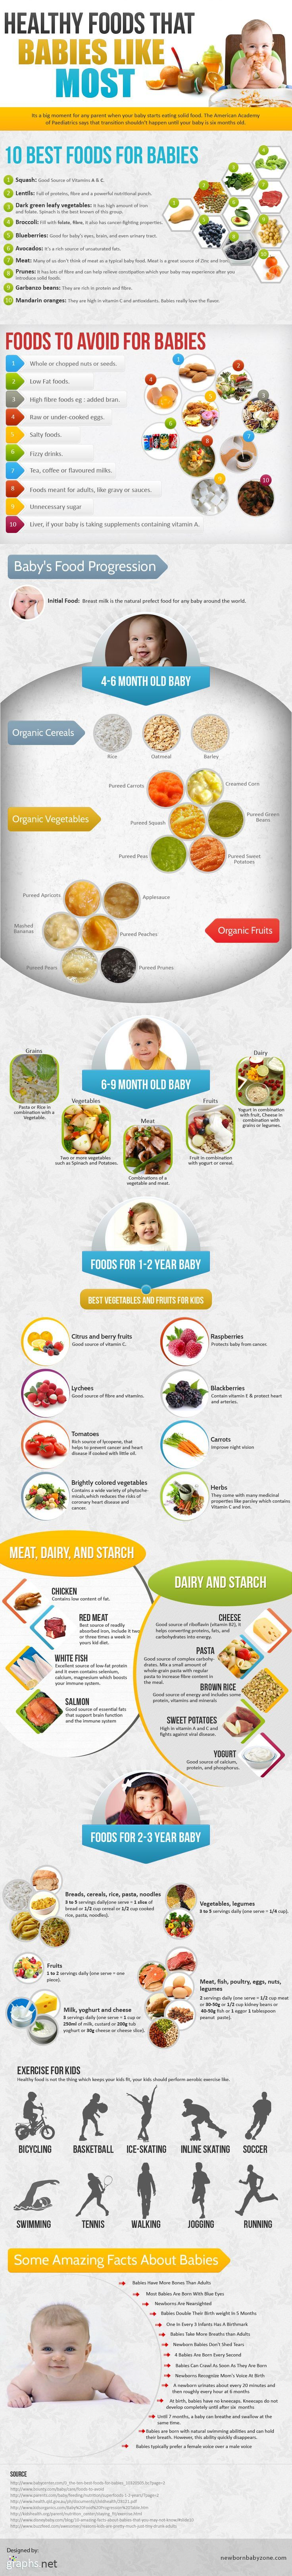 What Babies Can Eat Ages Newborn to 3 Years What Babies Can Eat: Ages Newborn to 3 Years